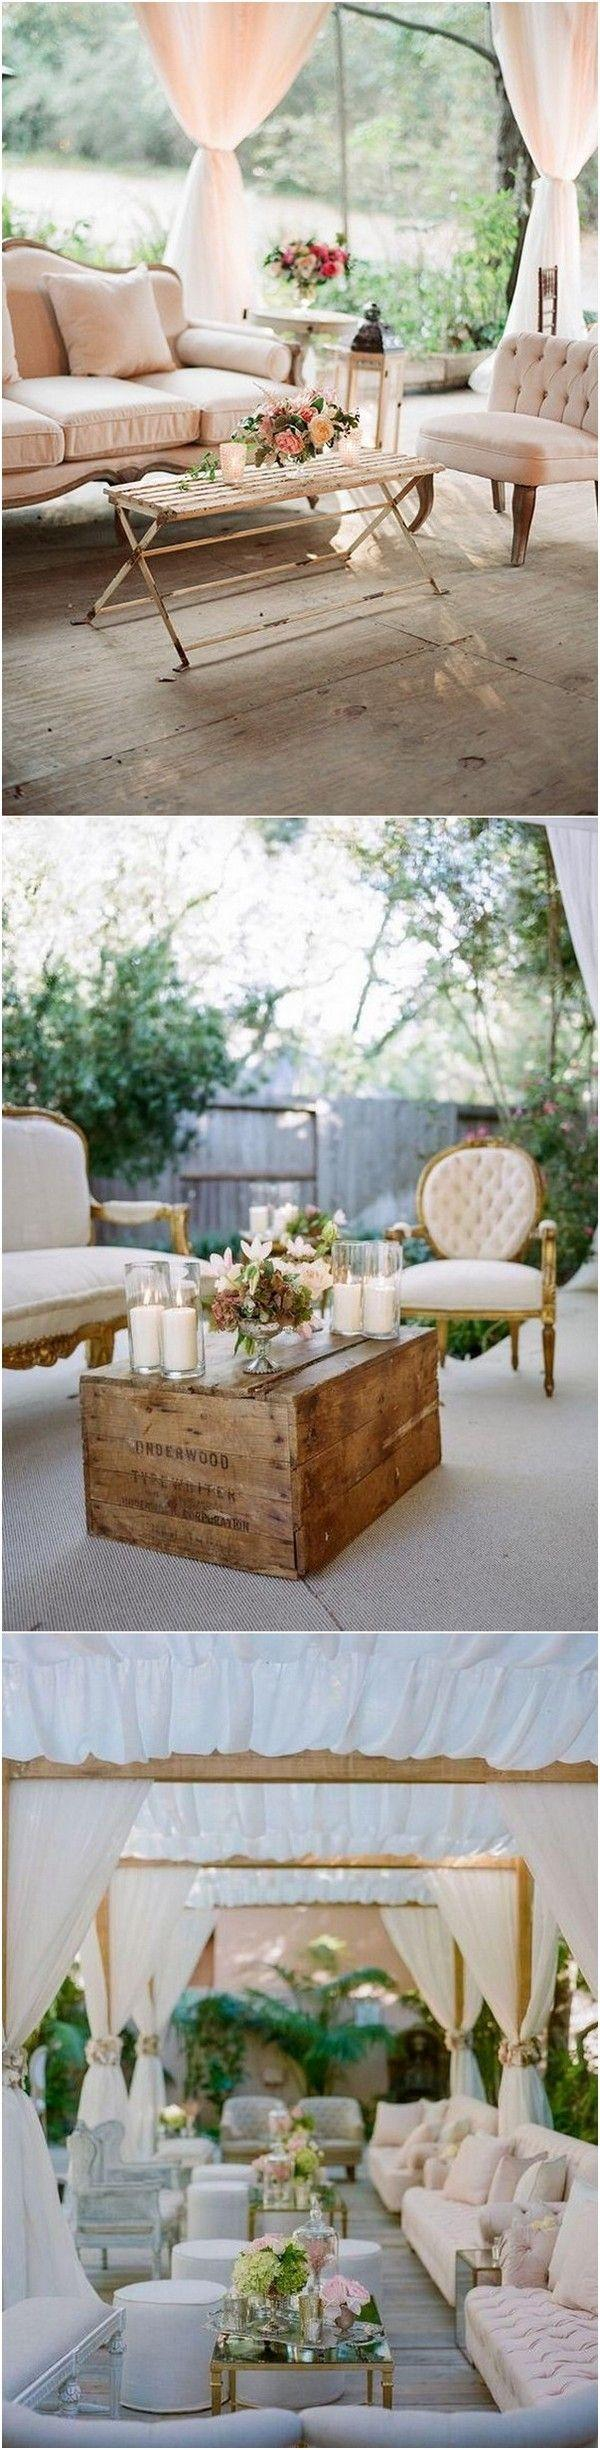 Mariage - 20 Creative Wedding Reception Lounge Area Ideas - Page 2 Of 3